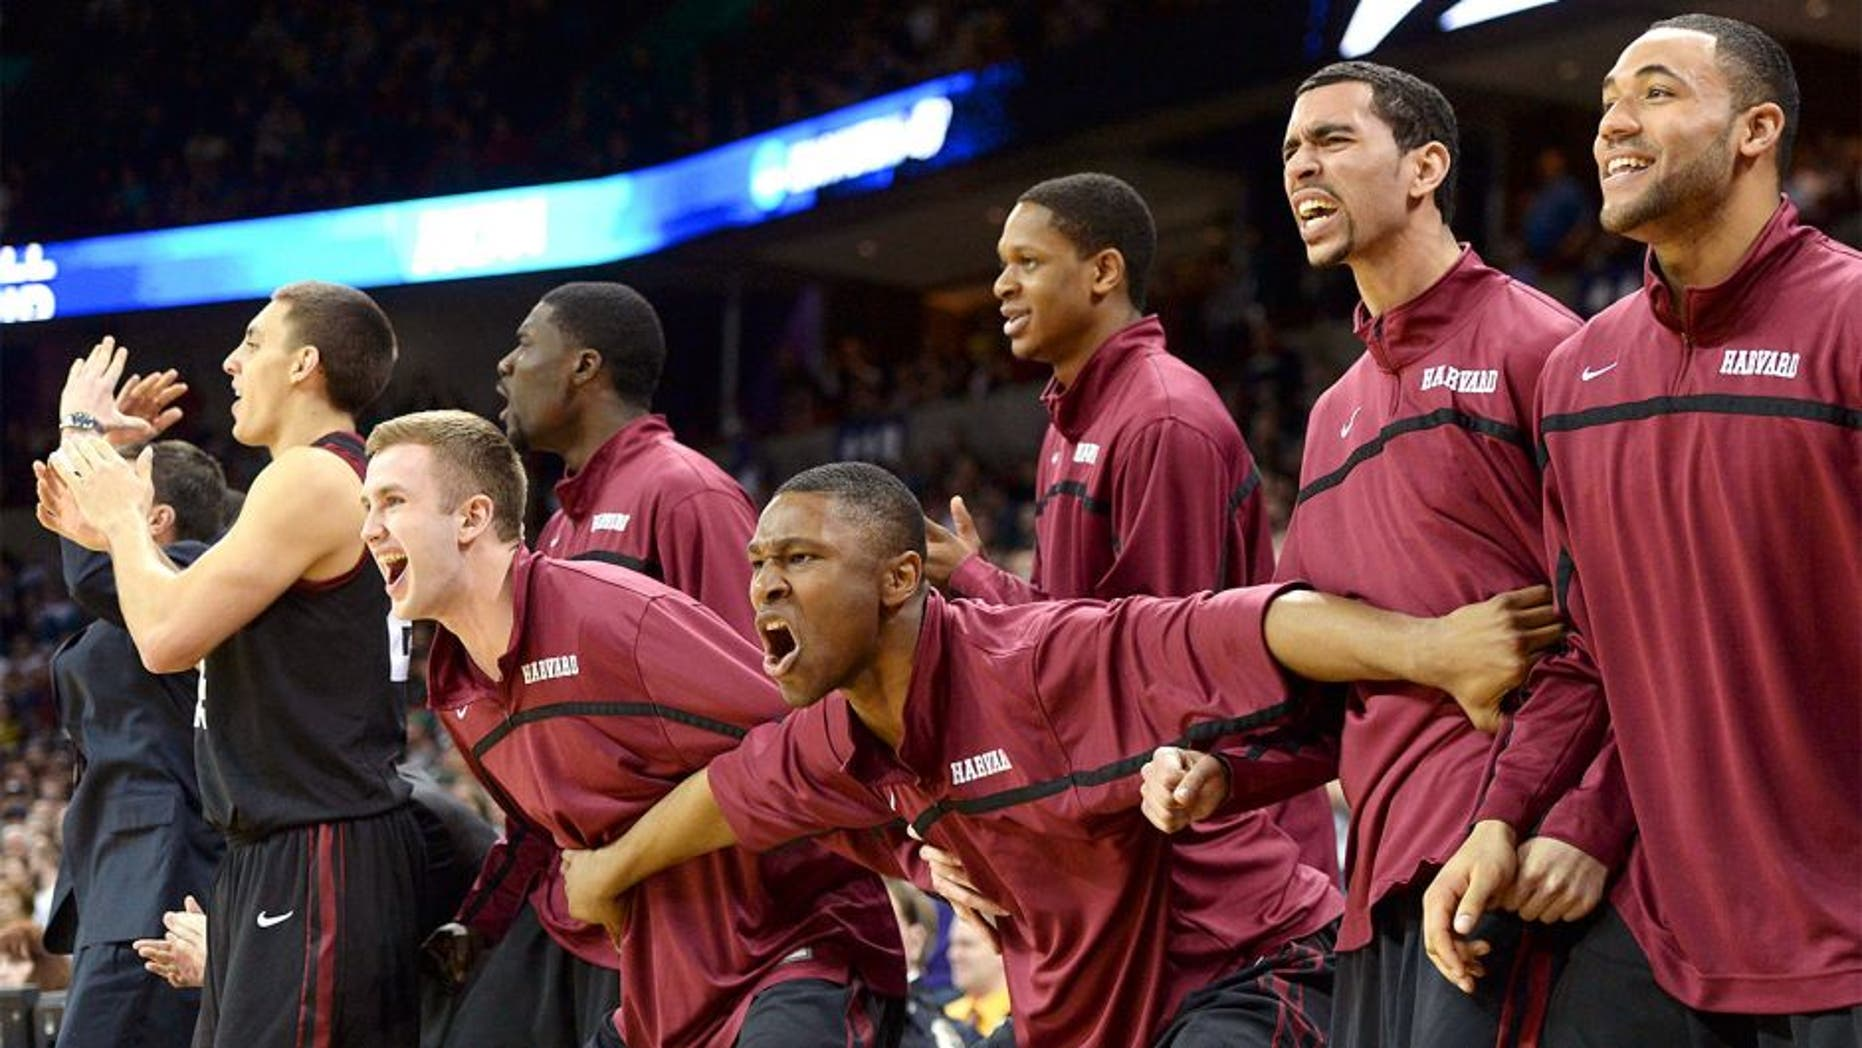 Mar 22, 2014; Spokane, WA, USA; Harvard Crimson players celebrate against the Michigan State Spartans in the second half of a men's college basketball game during the third round of the 2014 NCAA Tournament at Veterans Memorial Arena. Mandatory Credit: Kirby Lee-USA TODAY Sports